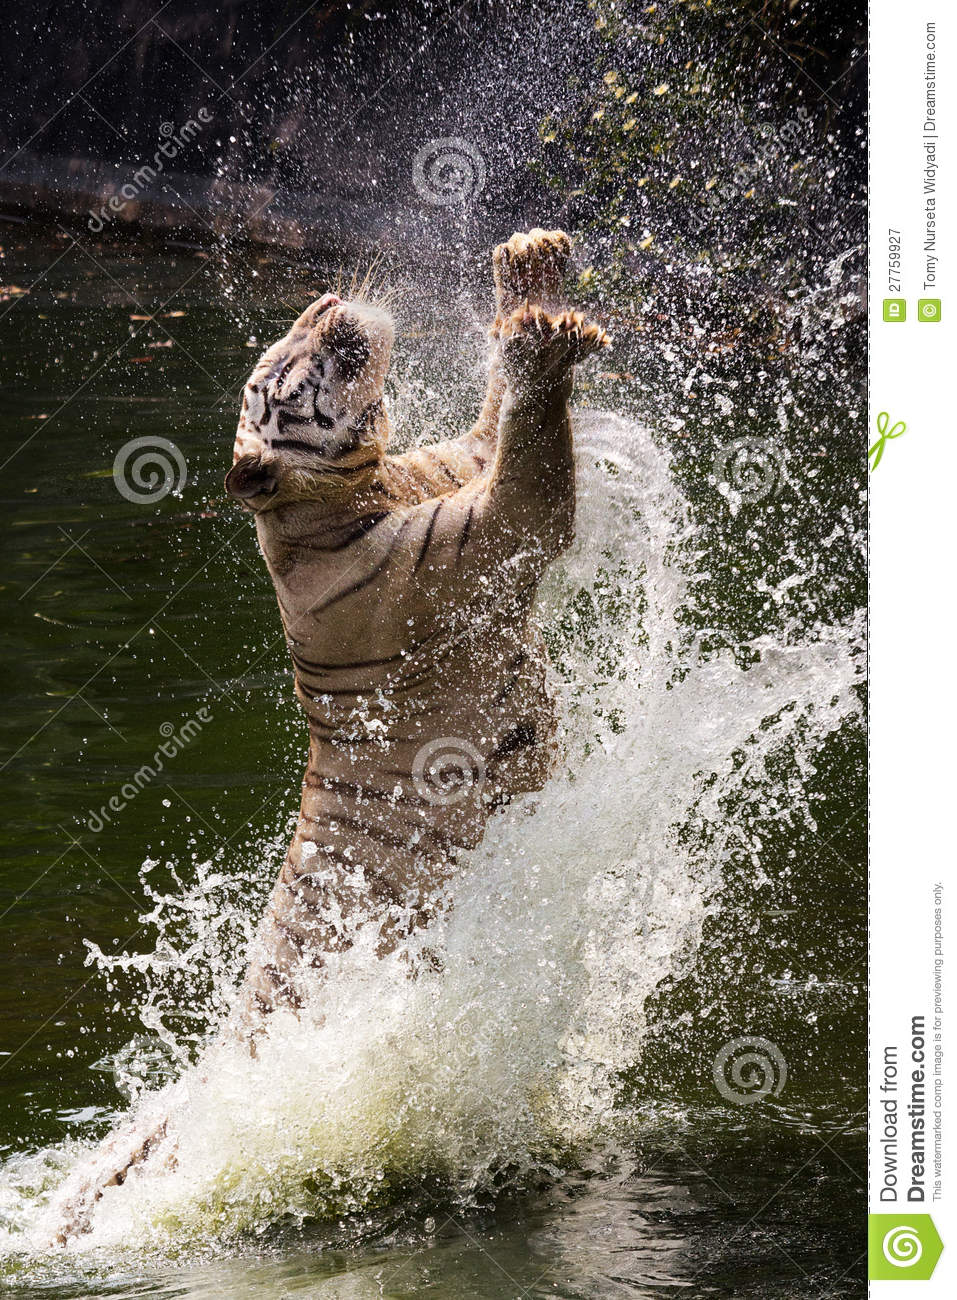 Amazon Rainforest Animals Wallpaper White Tiger Jumps Jumping Stock Image Image Of Black